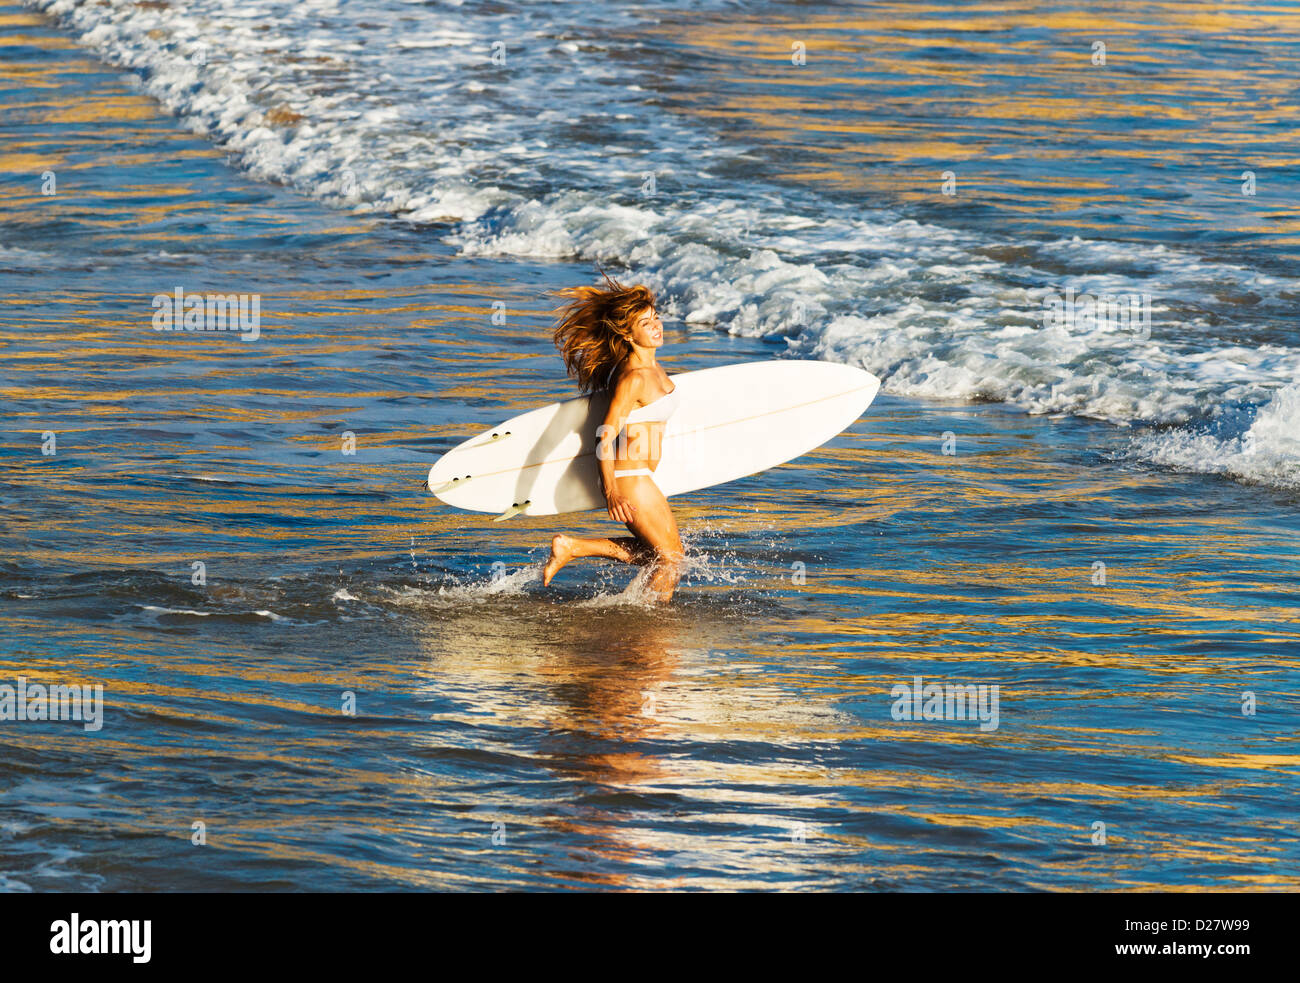 Woman running in the water. - Stock Image